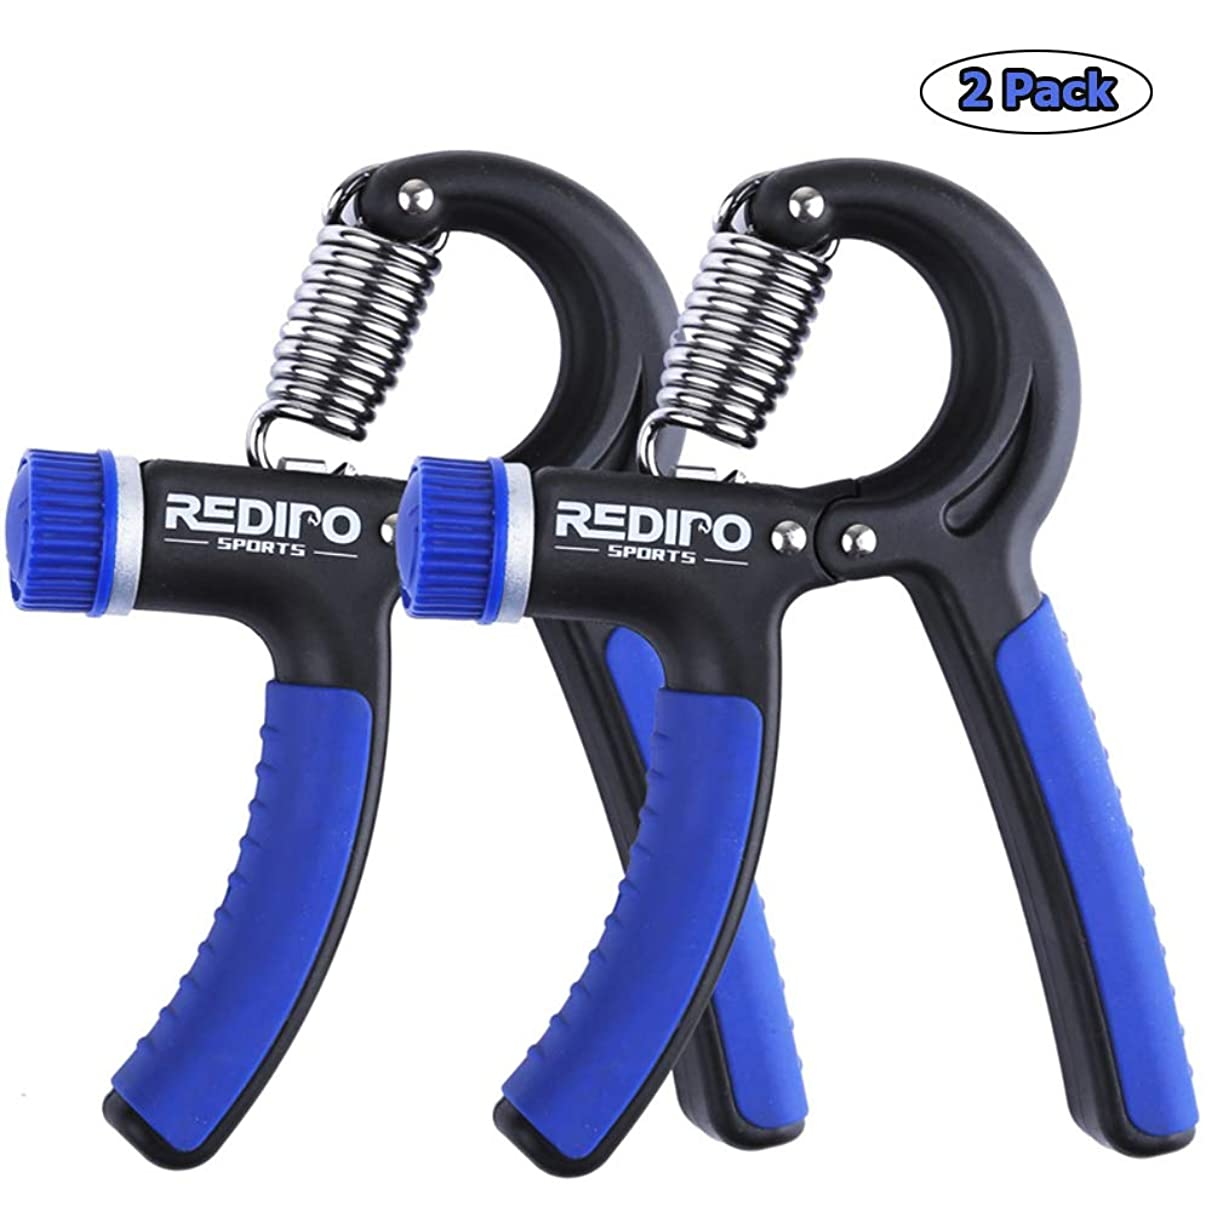 Hand Grip Strengthener - 2 Pack Forearm Exerciser Adjustable Resistance 20-90lbs Hand Squeezer for Men,Women - Grip Workout and Hand Rehabilitation